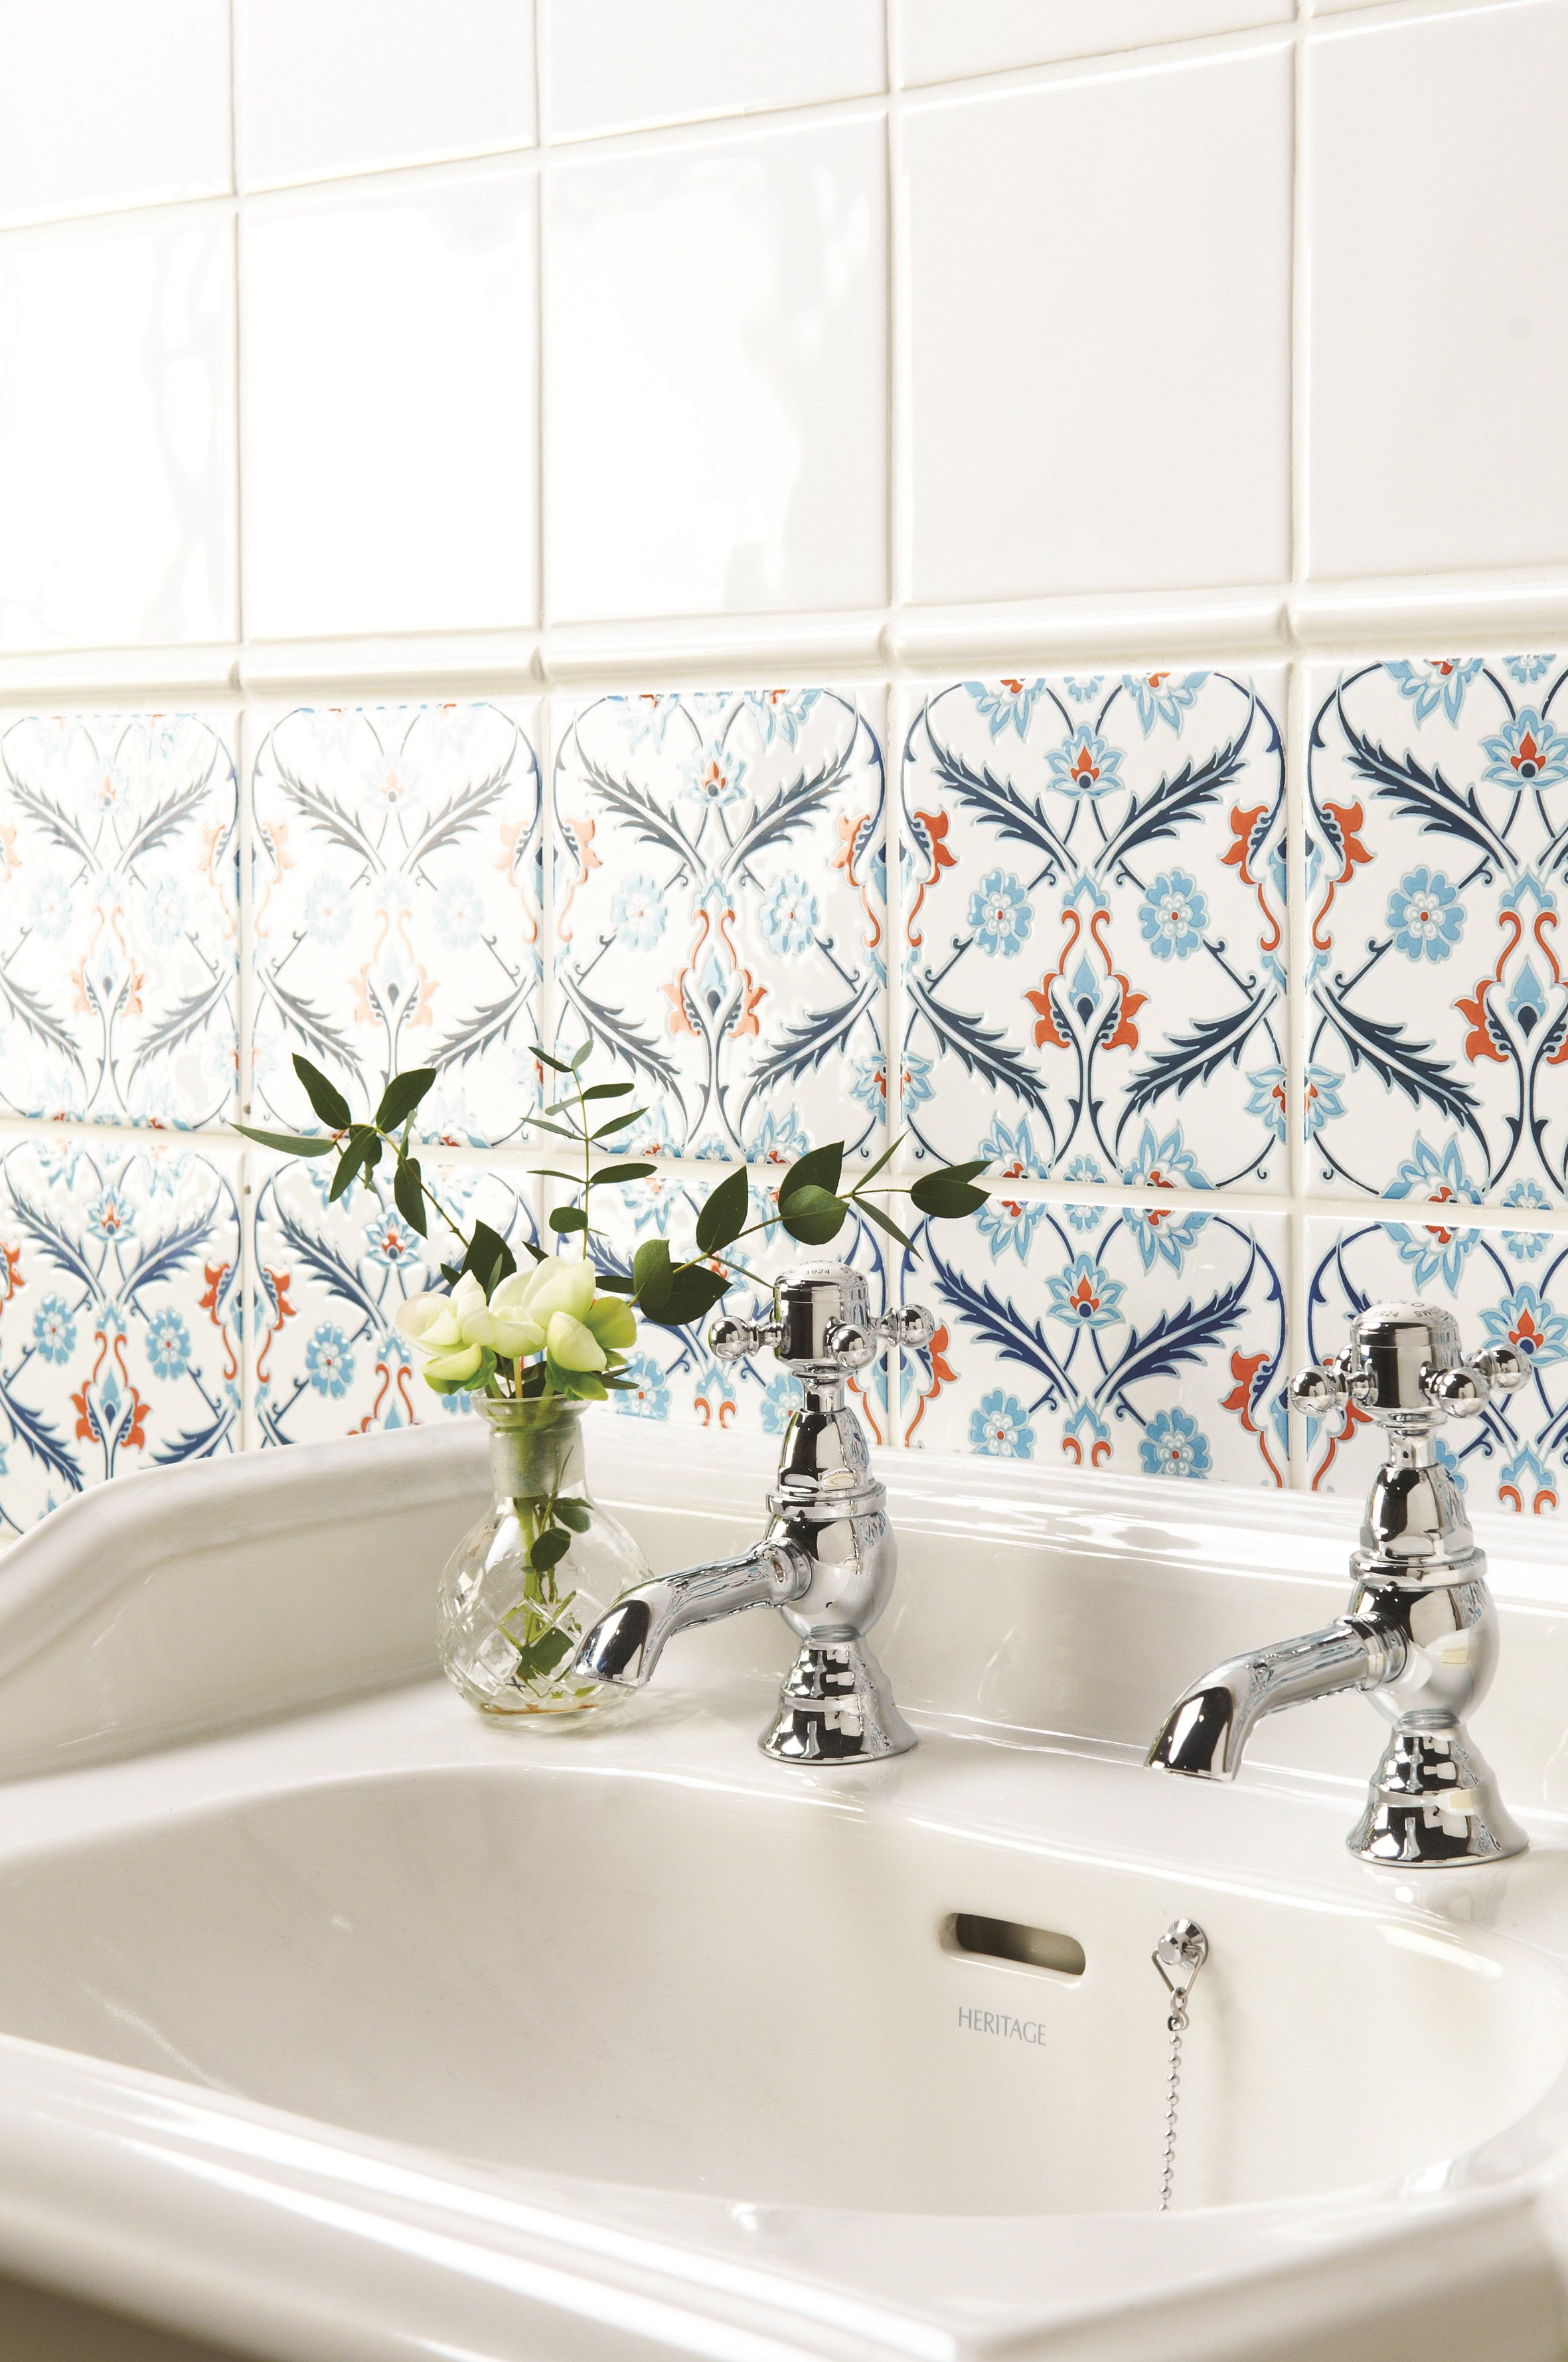 9. TheWinchesterTileCompany_1008468_TheWinchesterTile.jpg